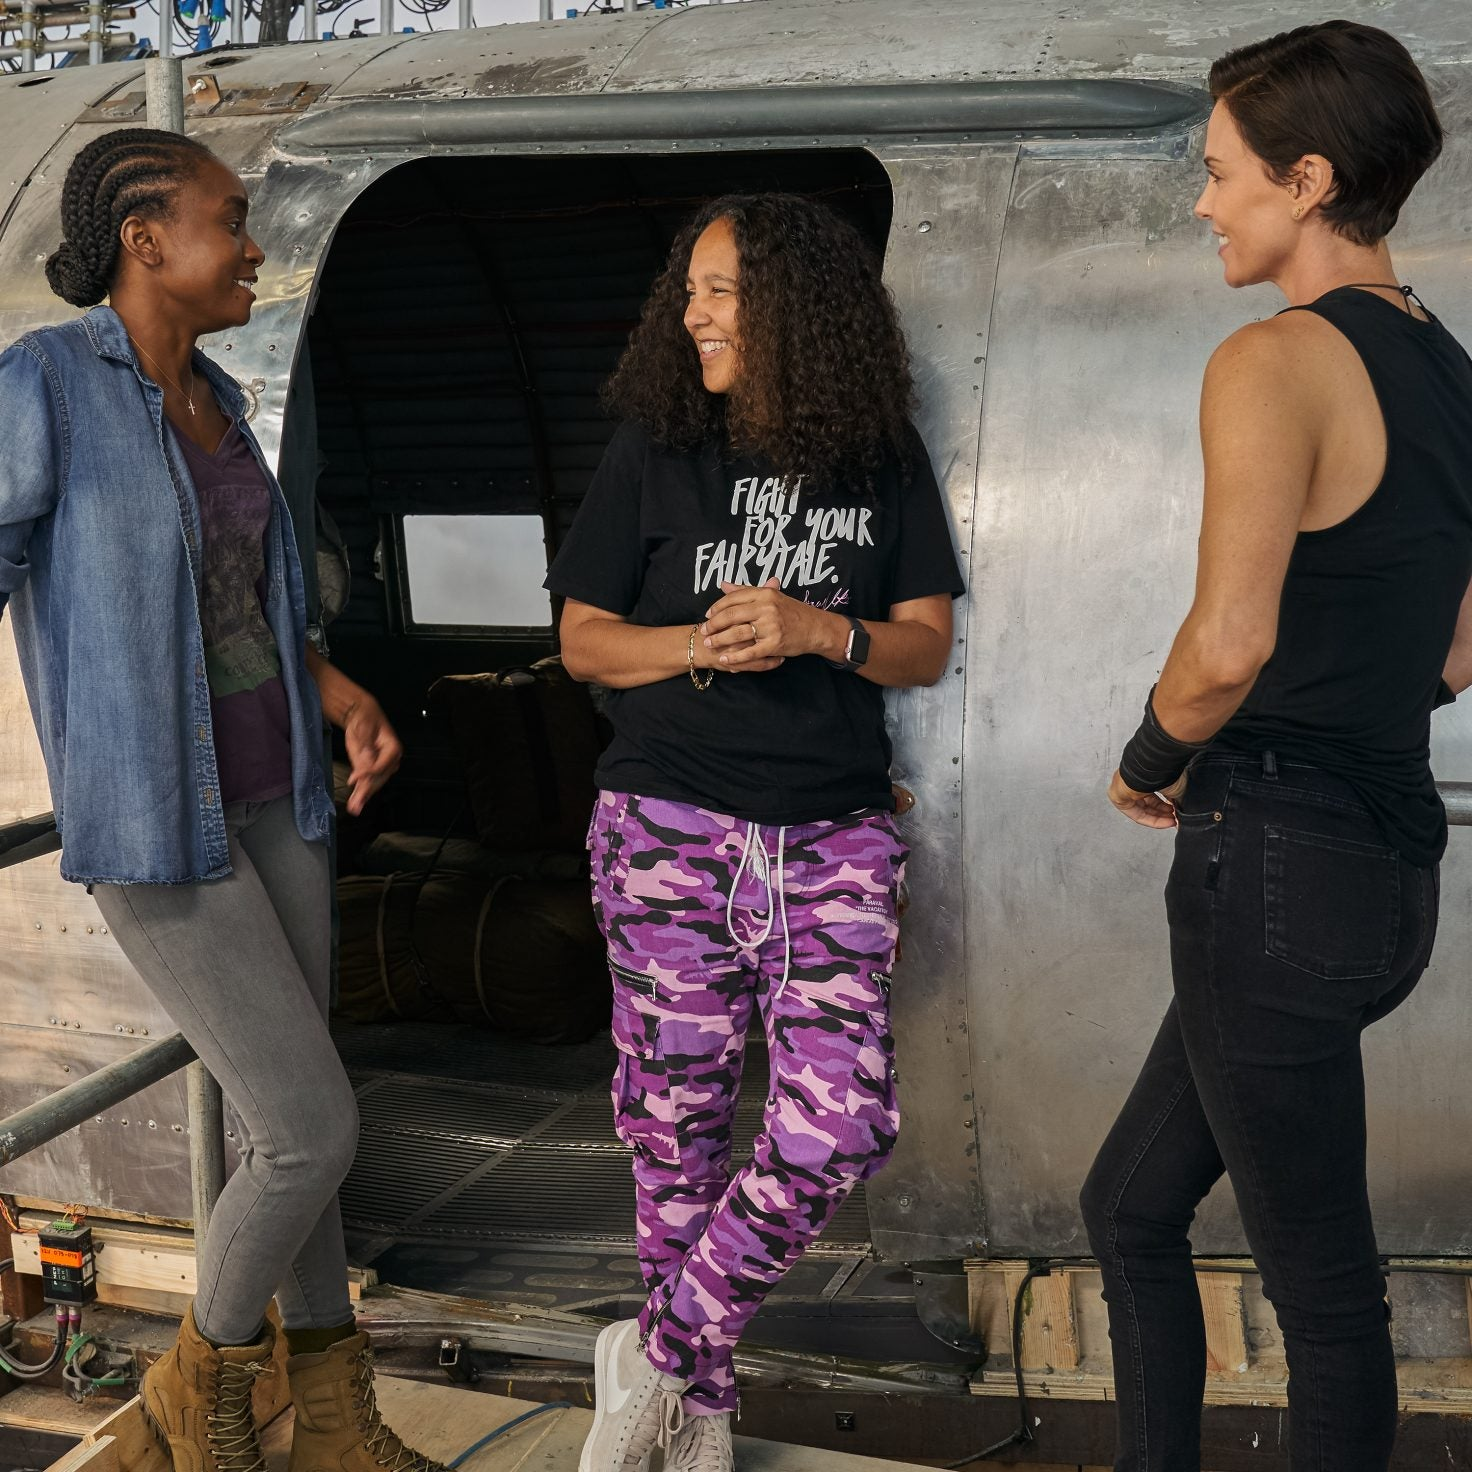 Why Gina Prince-Bythewood Puts 'Warrior Black Women' On-Screen